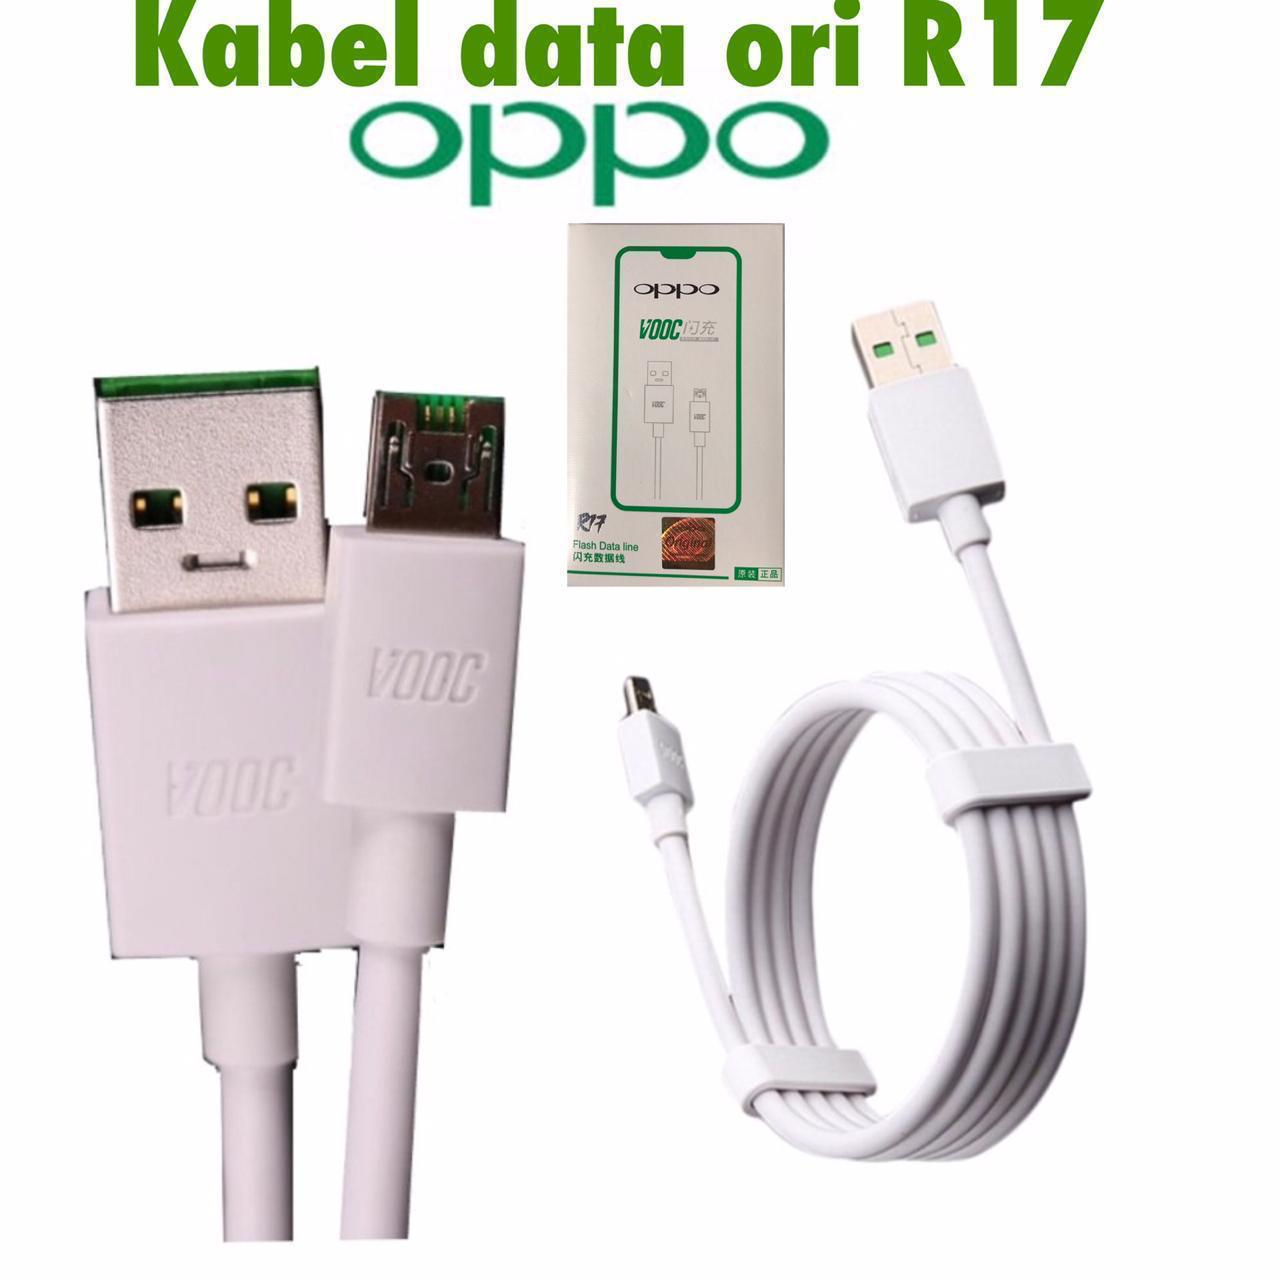 Kabel Data Oppo R17 Ori 100%